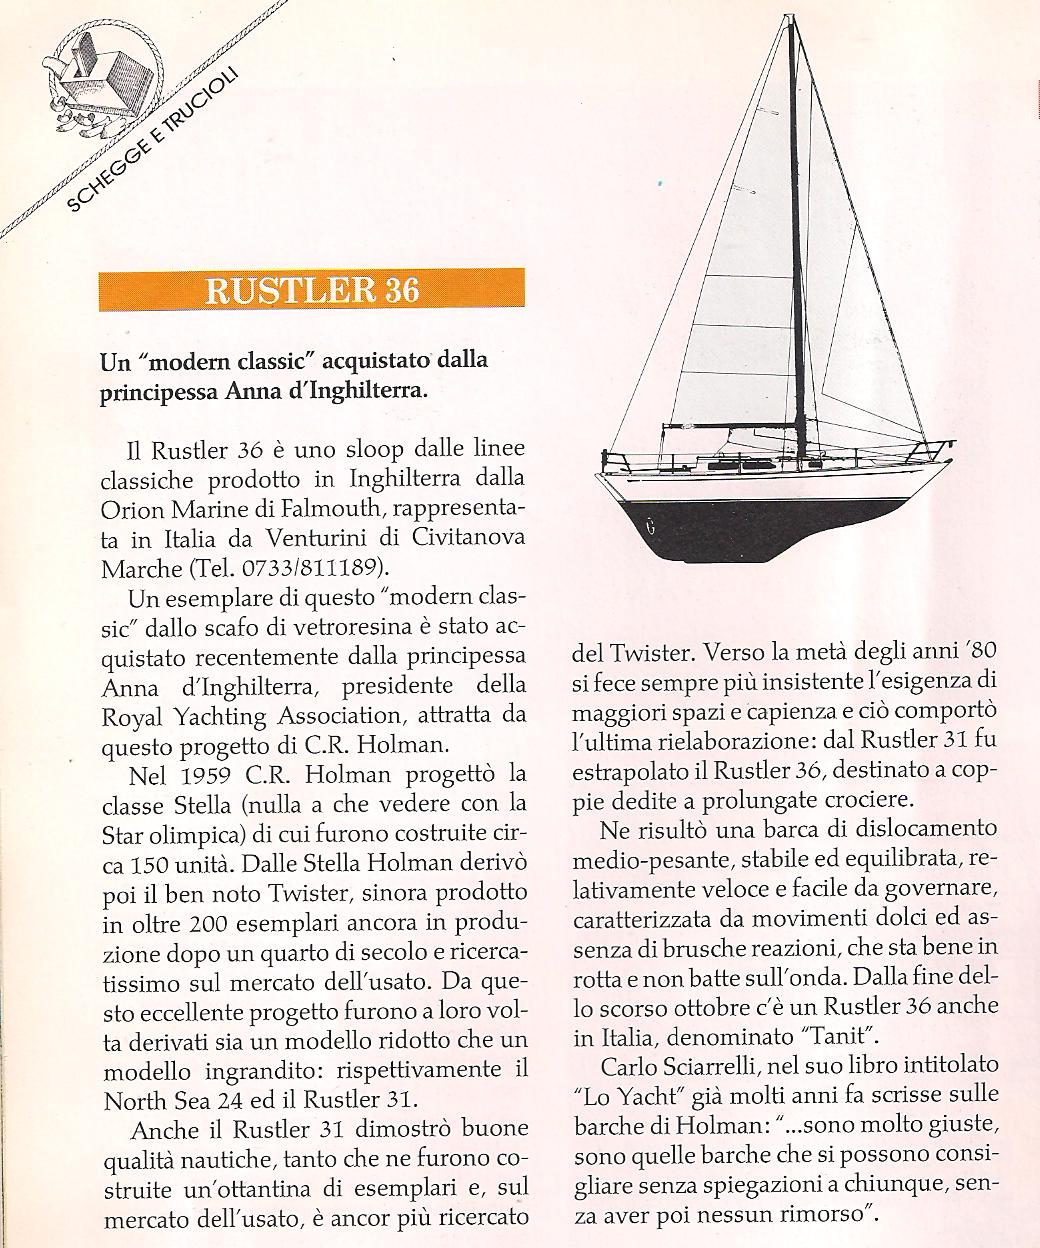 1992 06 PRESS ORIONMARINE Yacht Digest 48-49.jpg